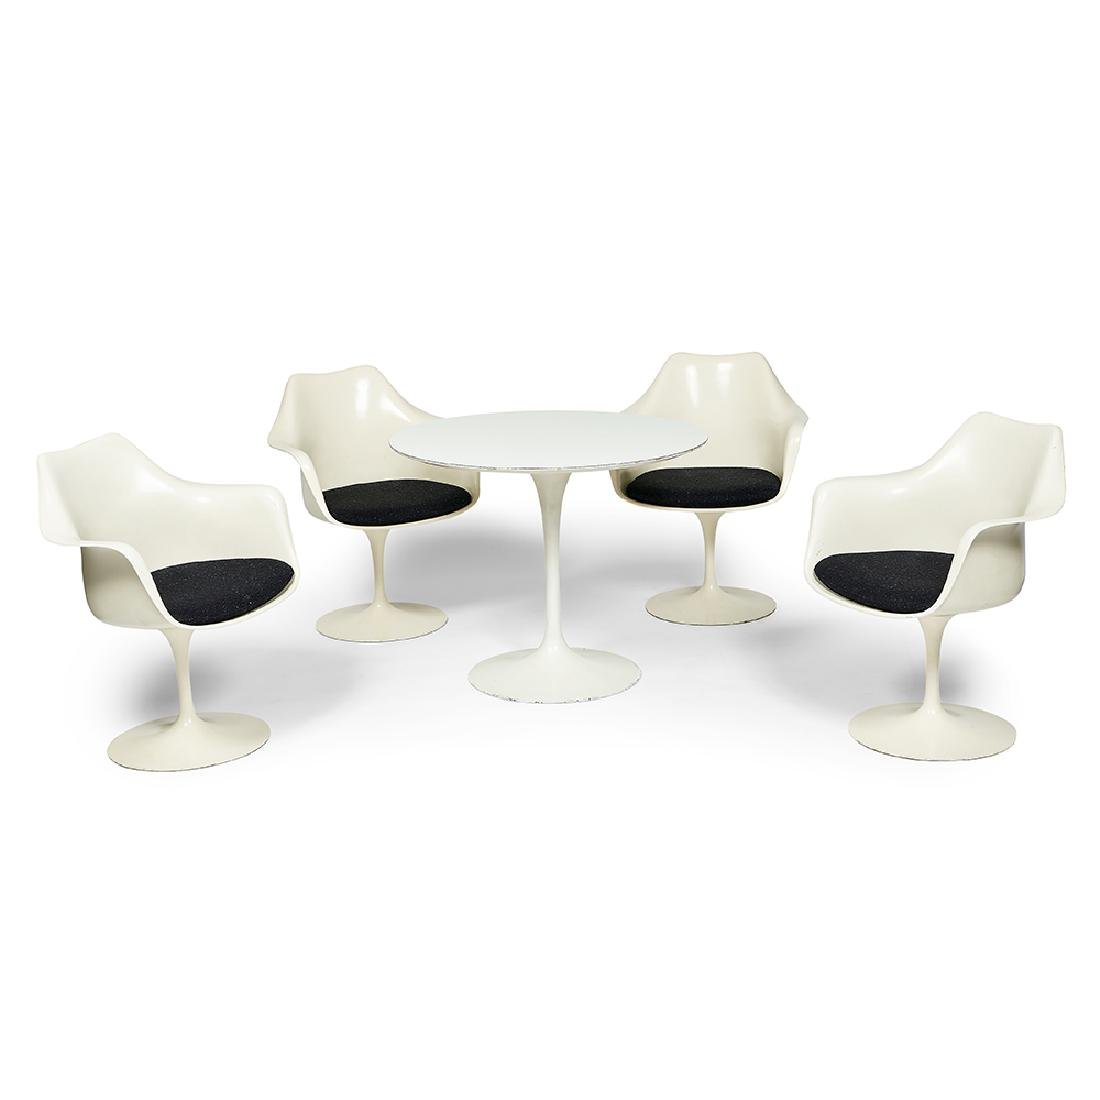 Eero Saarinen, Knoll dining table and four chairs